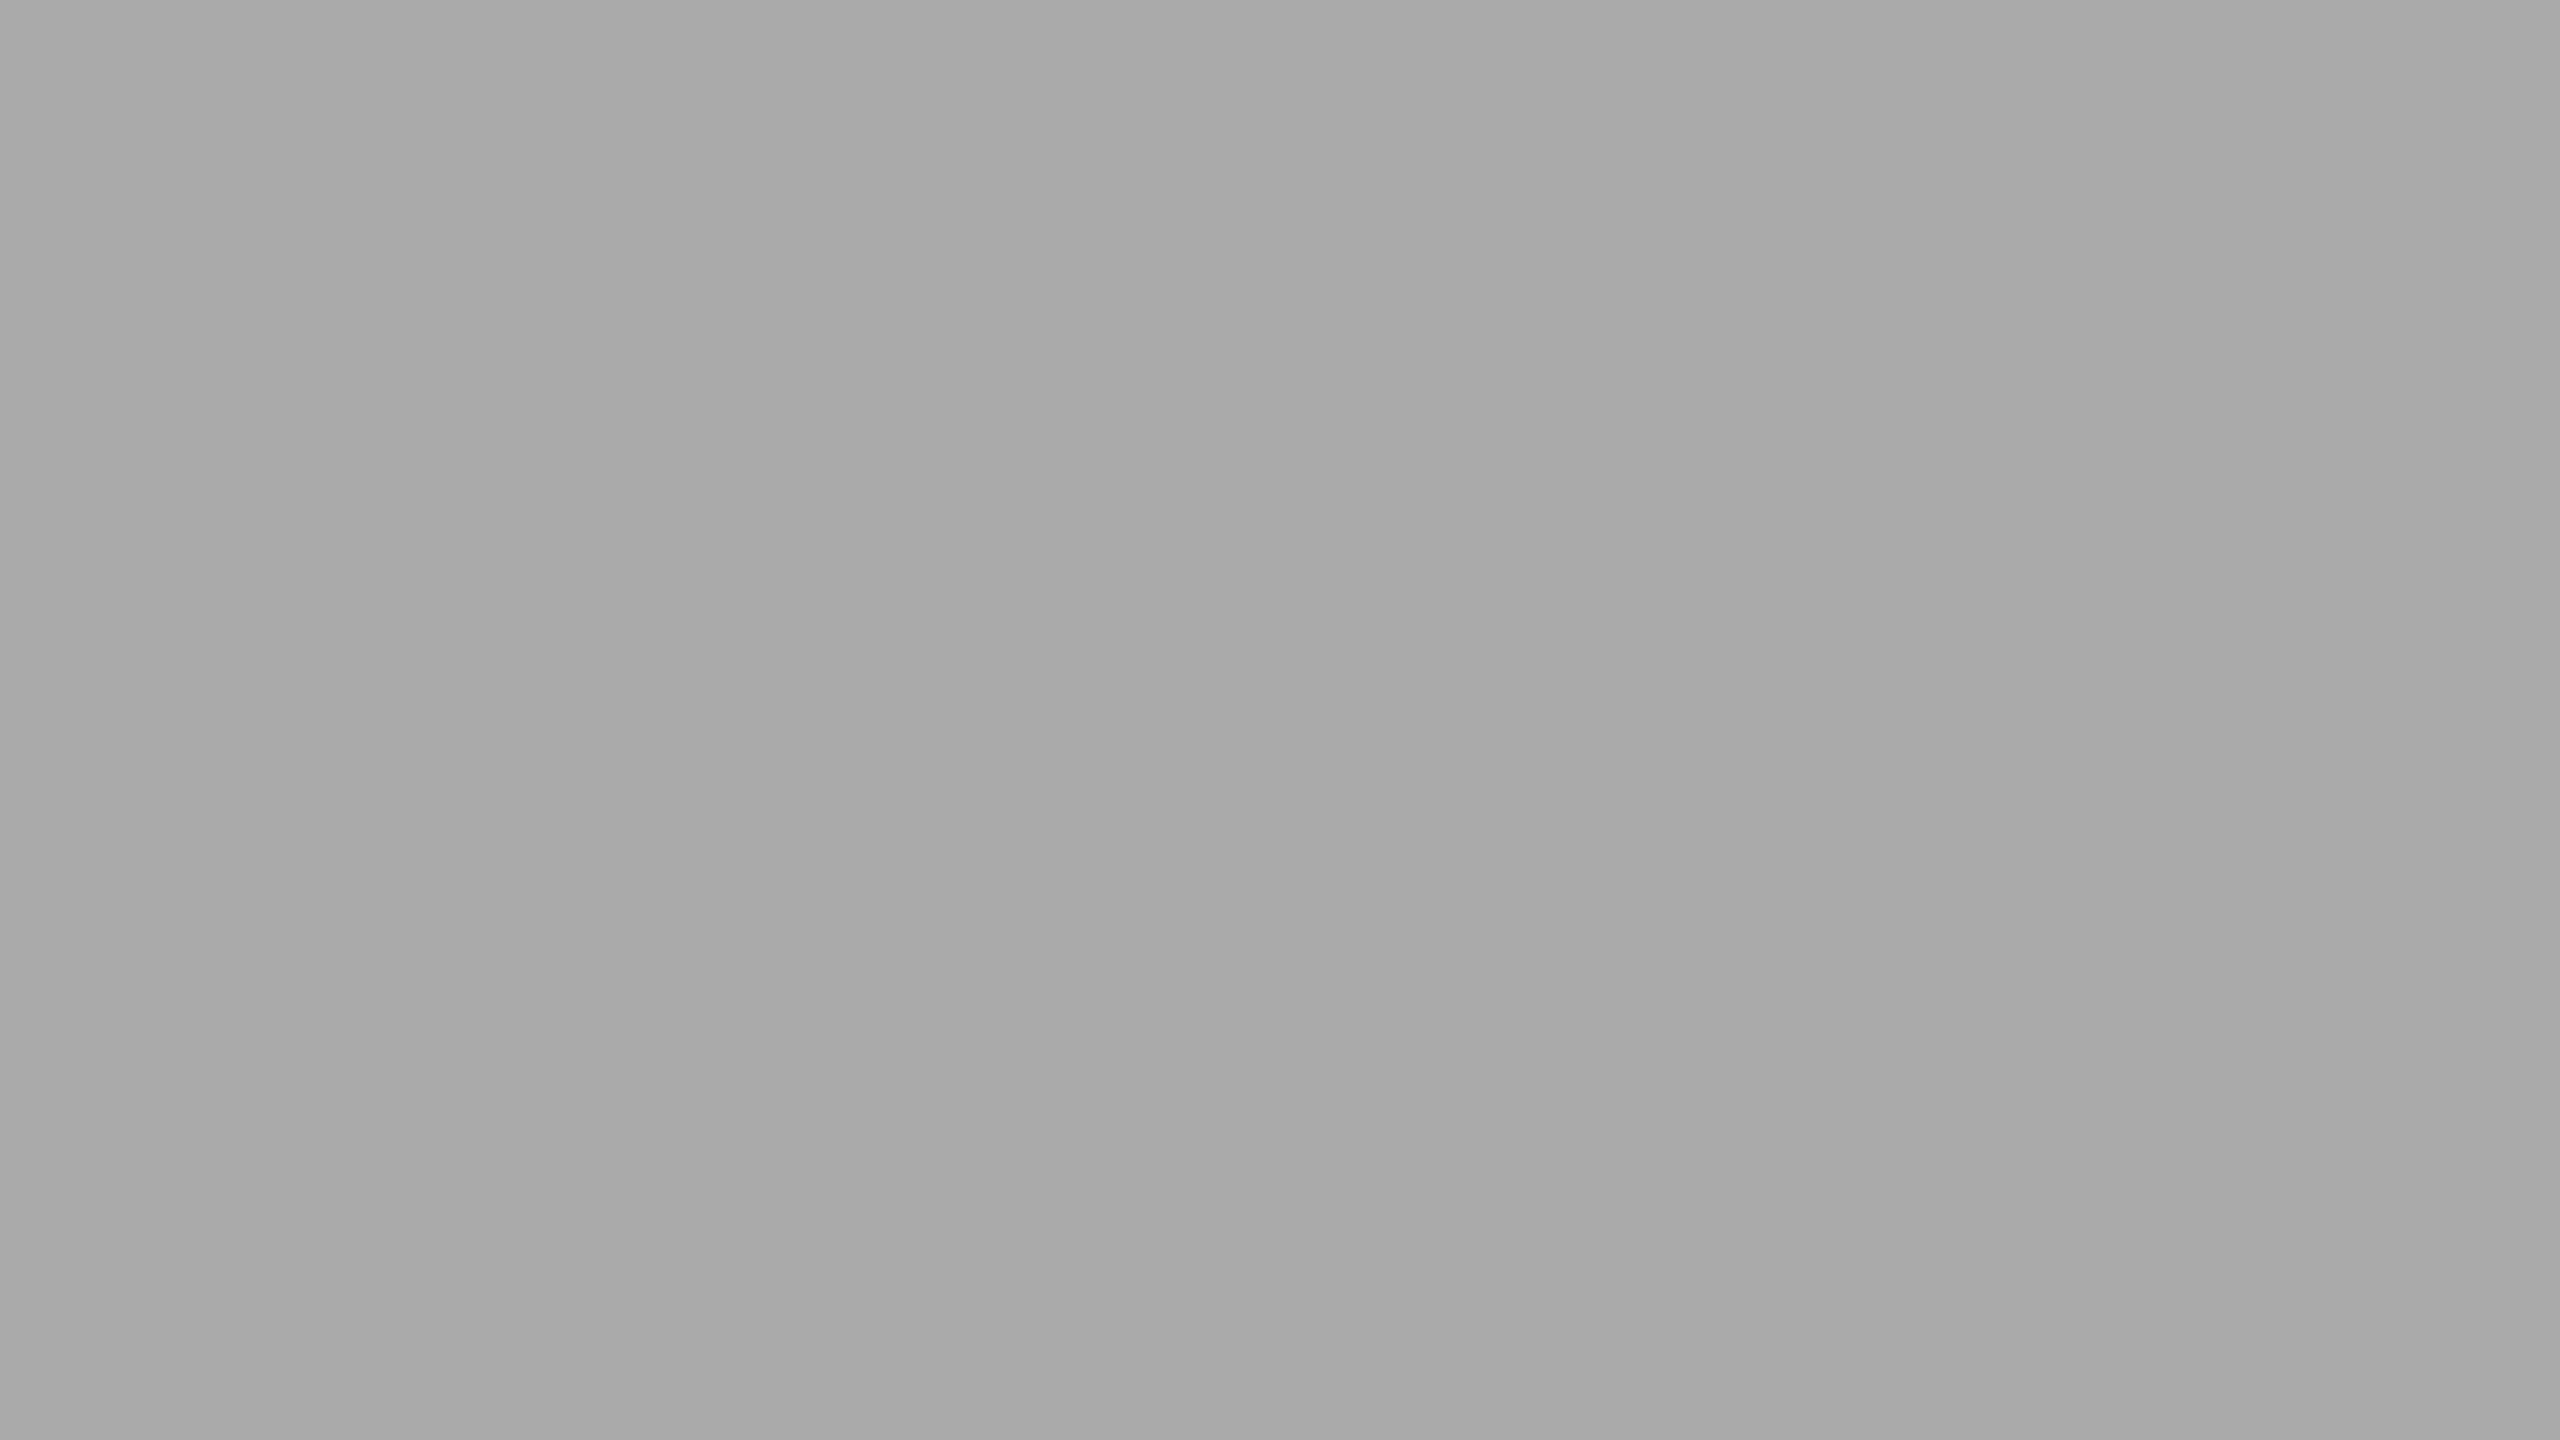 2560x1440 Dark Gray Solid Color Background